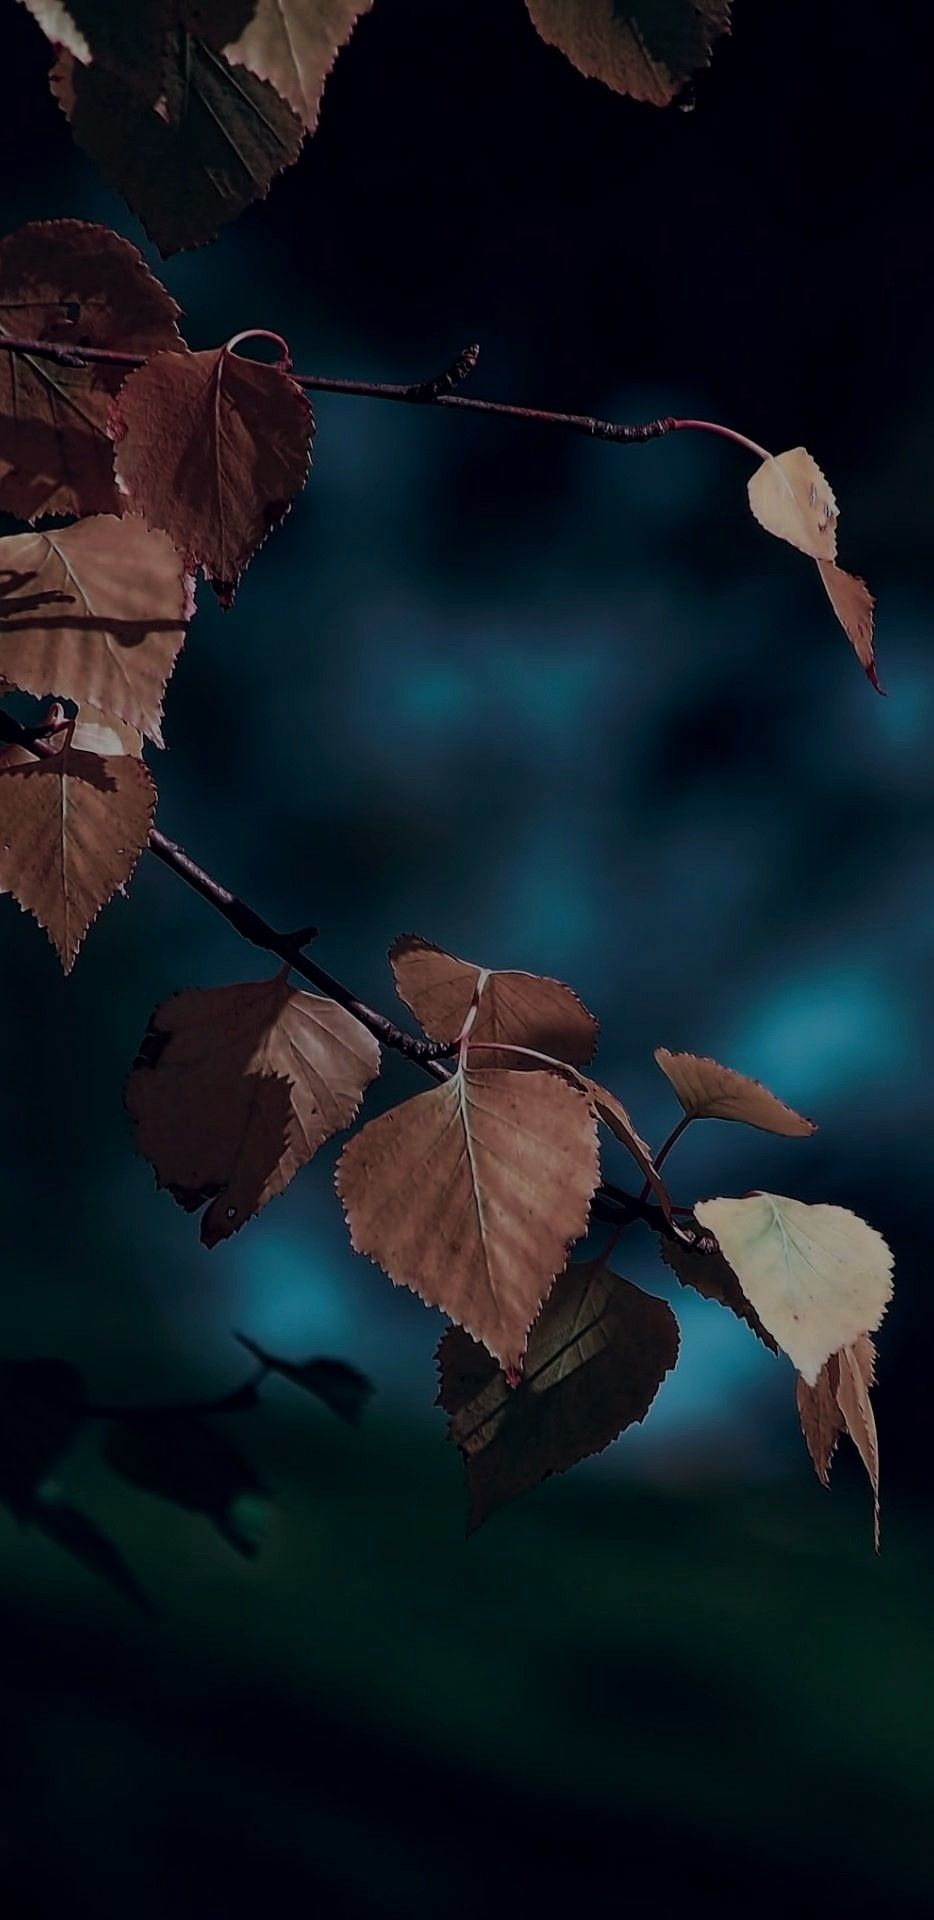 Ios 11 Iphone X Dark Blue Leaves Autumn Apple